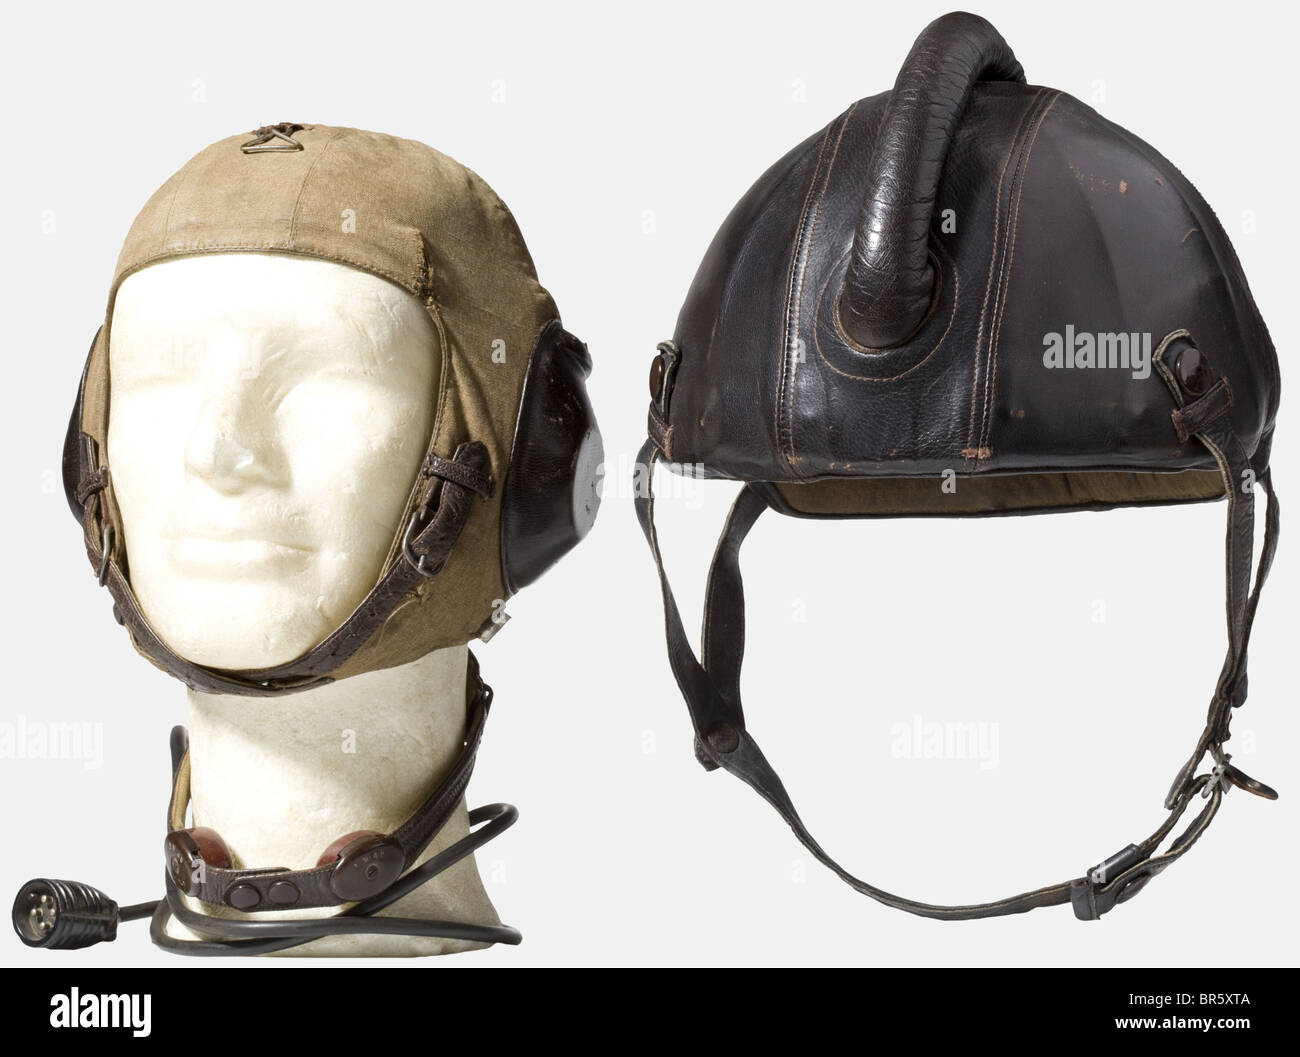 A pilot's flight protection helmet, model SSK 90 Body of riveted steel plates with cover and bulge of brown - Stock Image